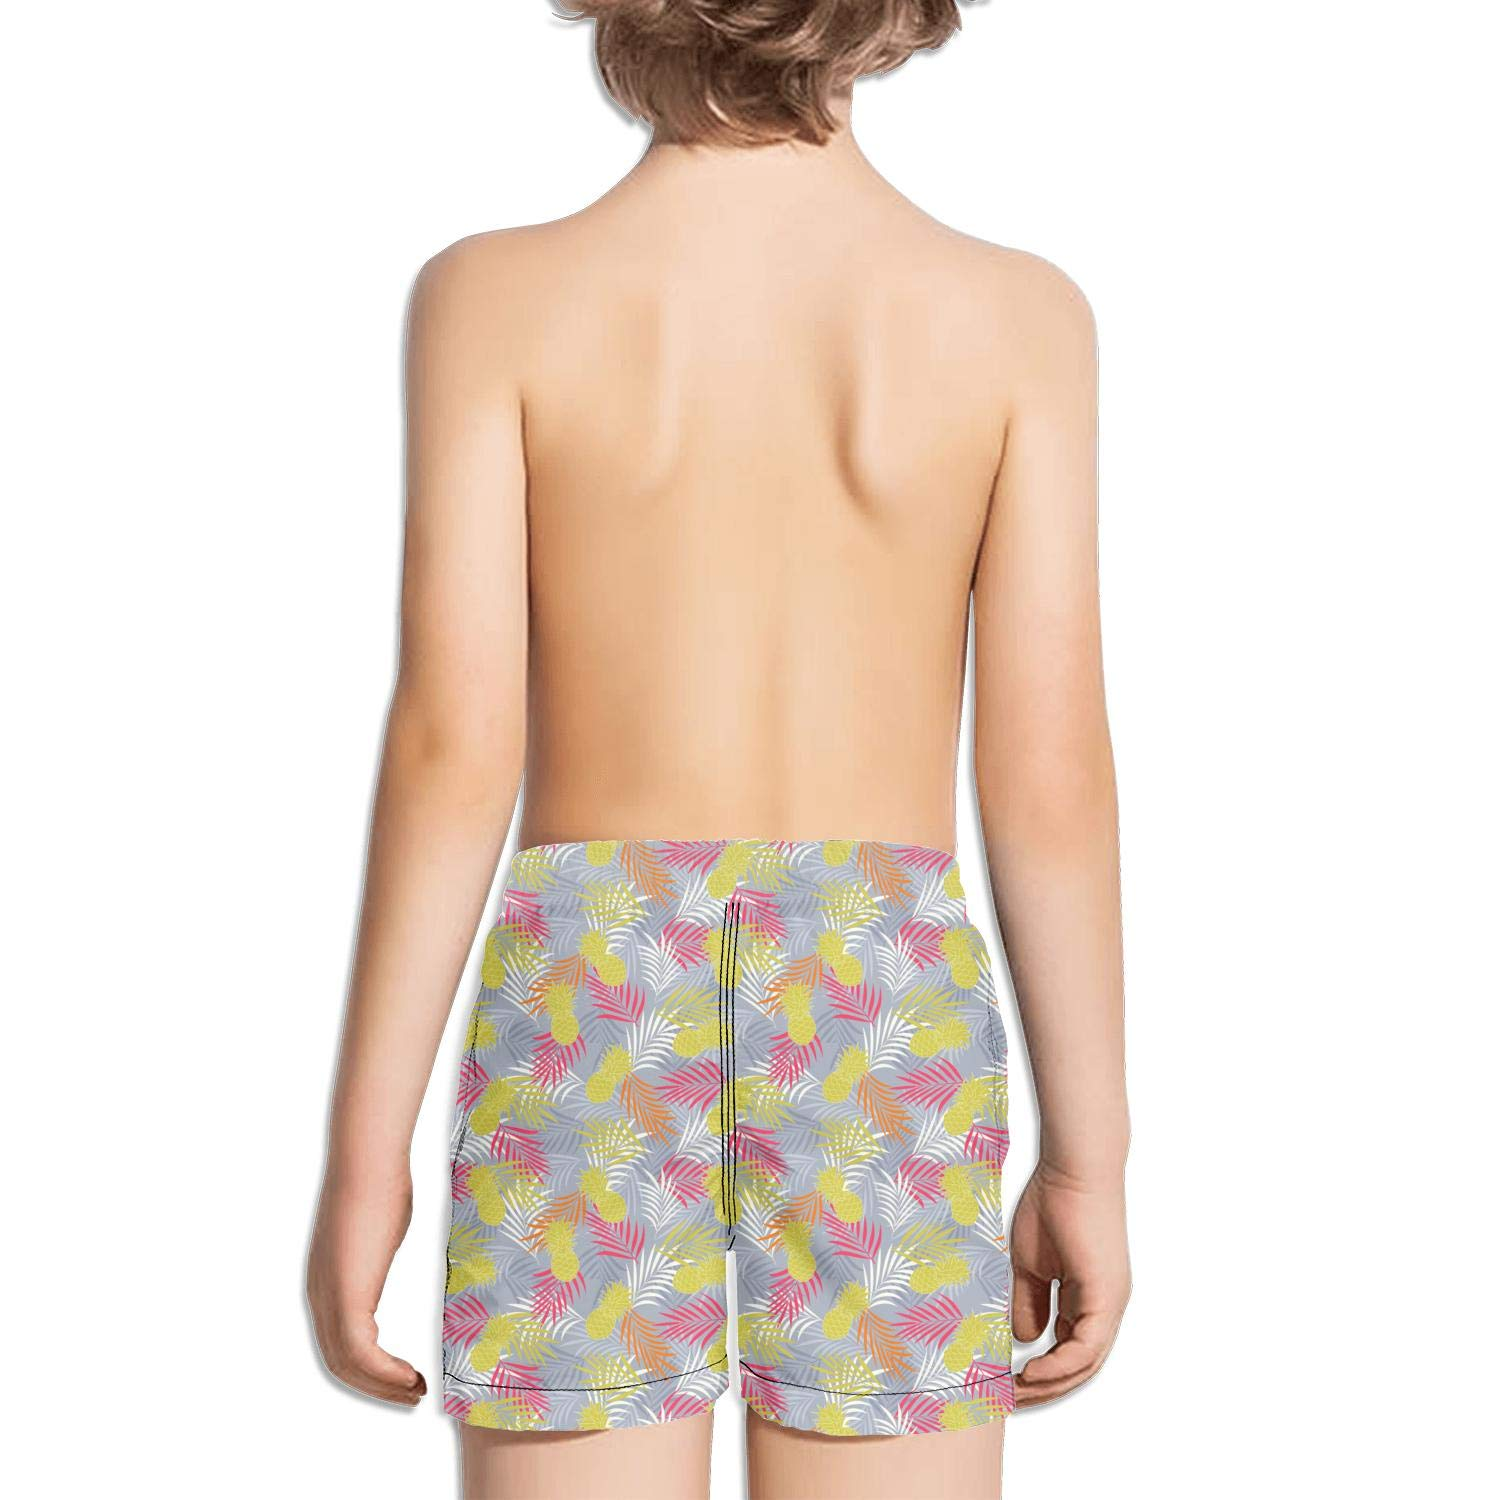 DSDRFE2DEW Swimming Trunks Summer Pattern with Color Pineapple Party Printed Shorts for boyswith Drawstring